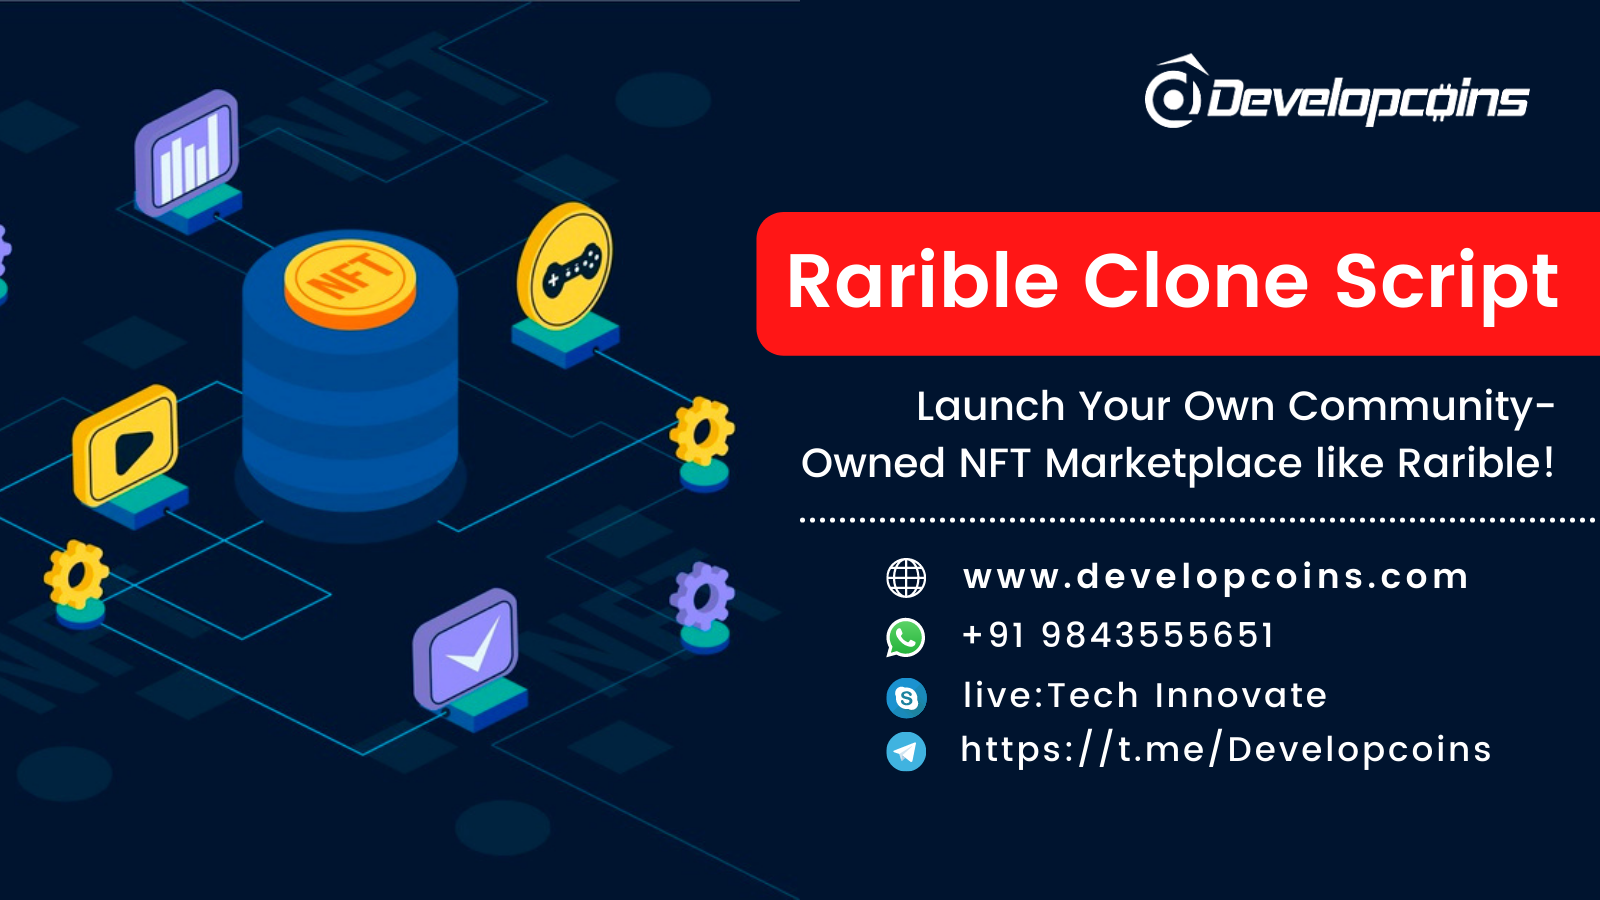 Launch Your Own Community-Owned NFT Marketplace like Rarible